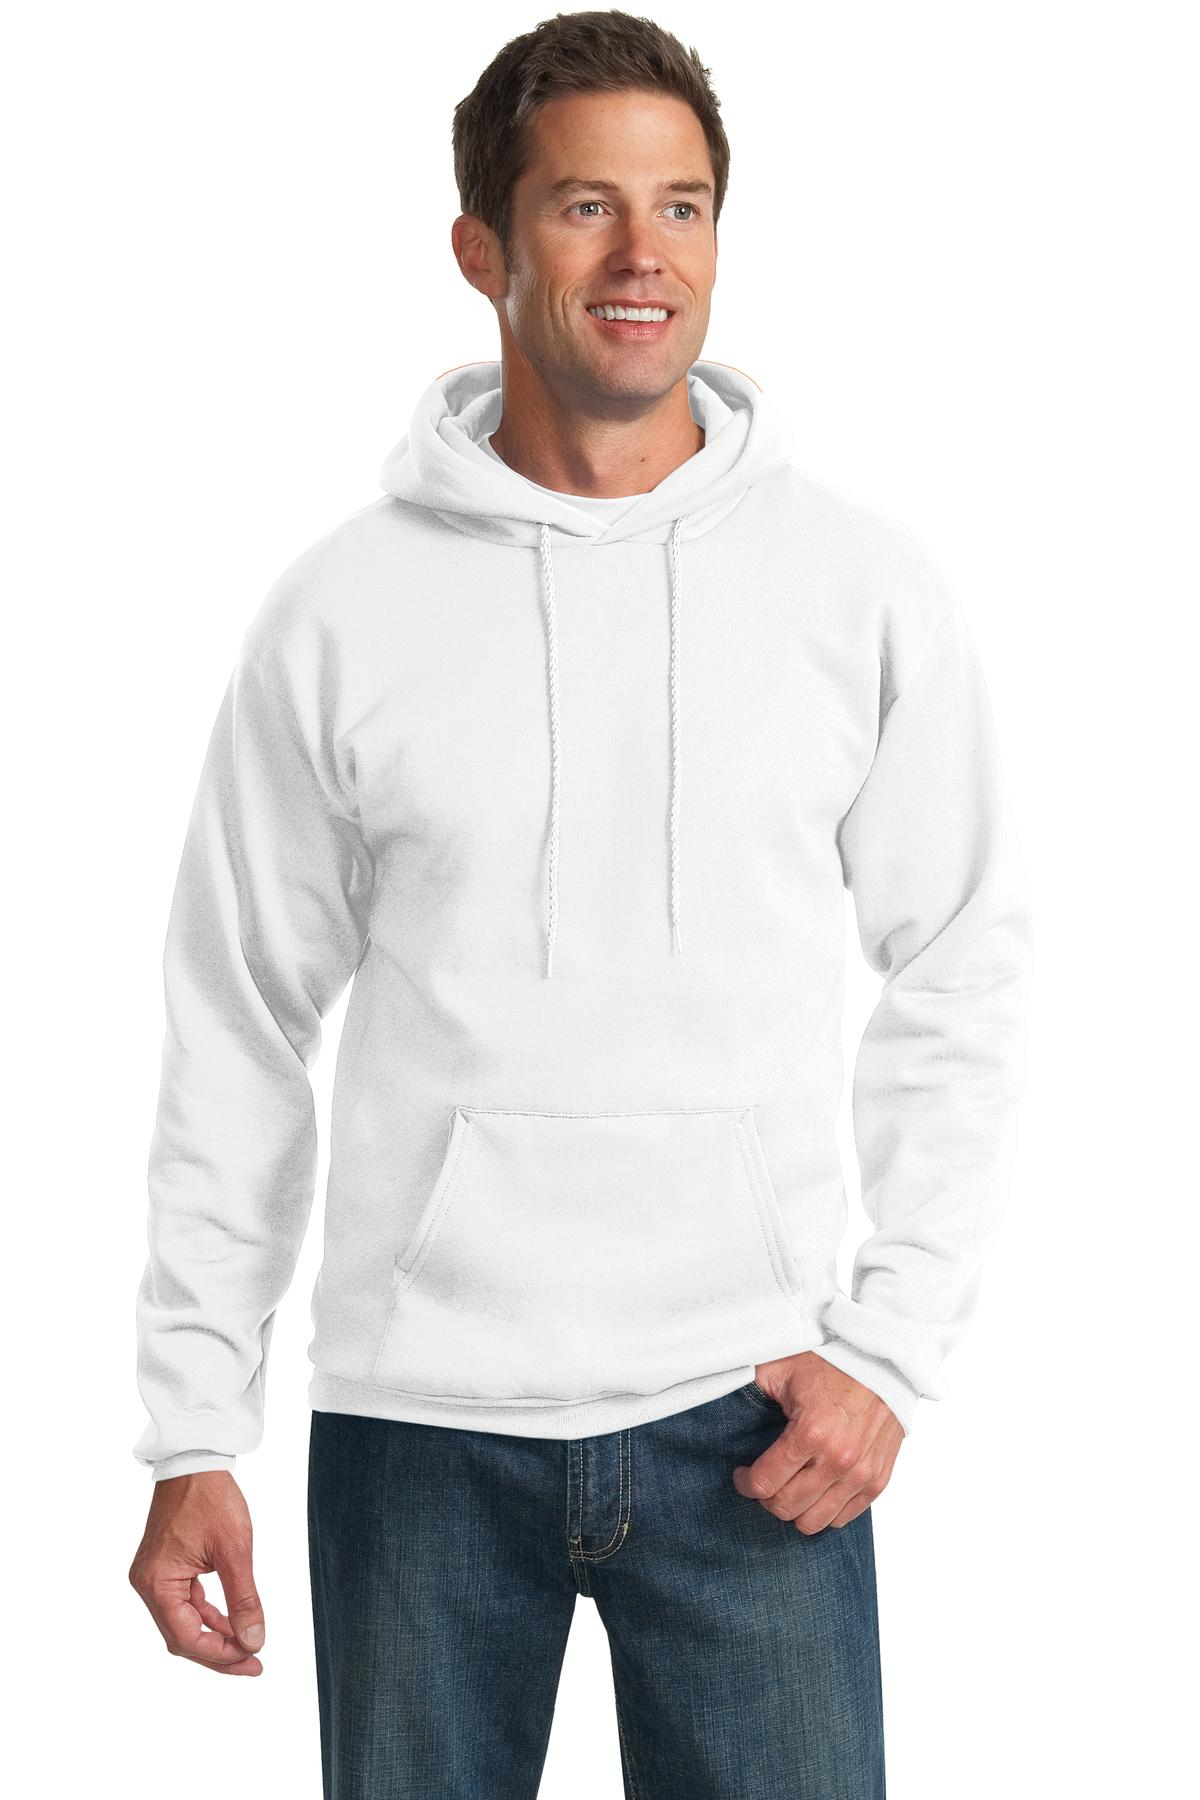 PC90HT XXX-Large Tall Athletic Heather Port /& Company Tall Pullover Hooded Sweatshirt